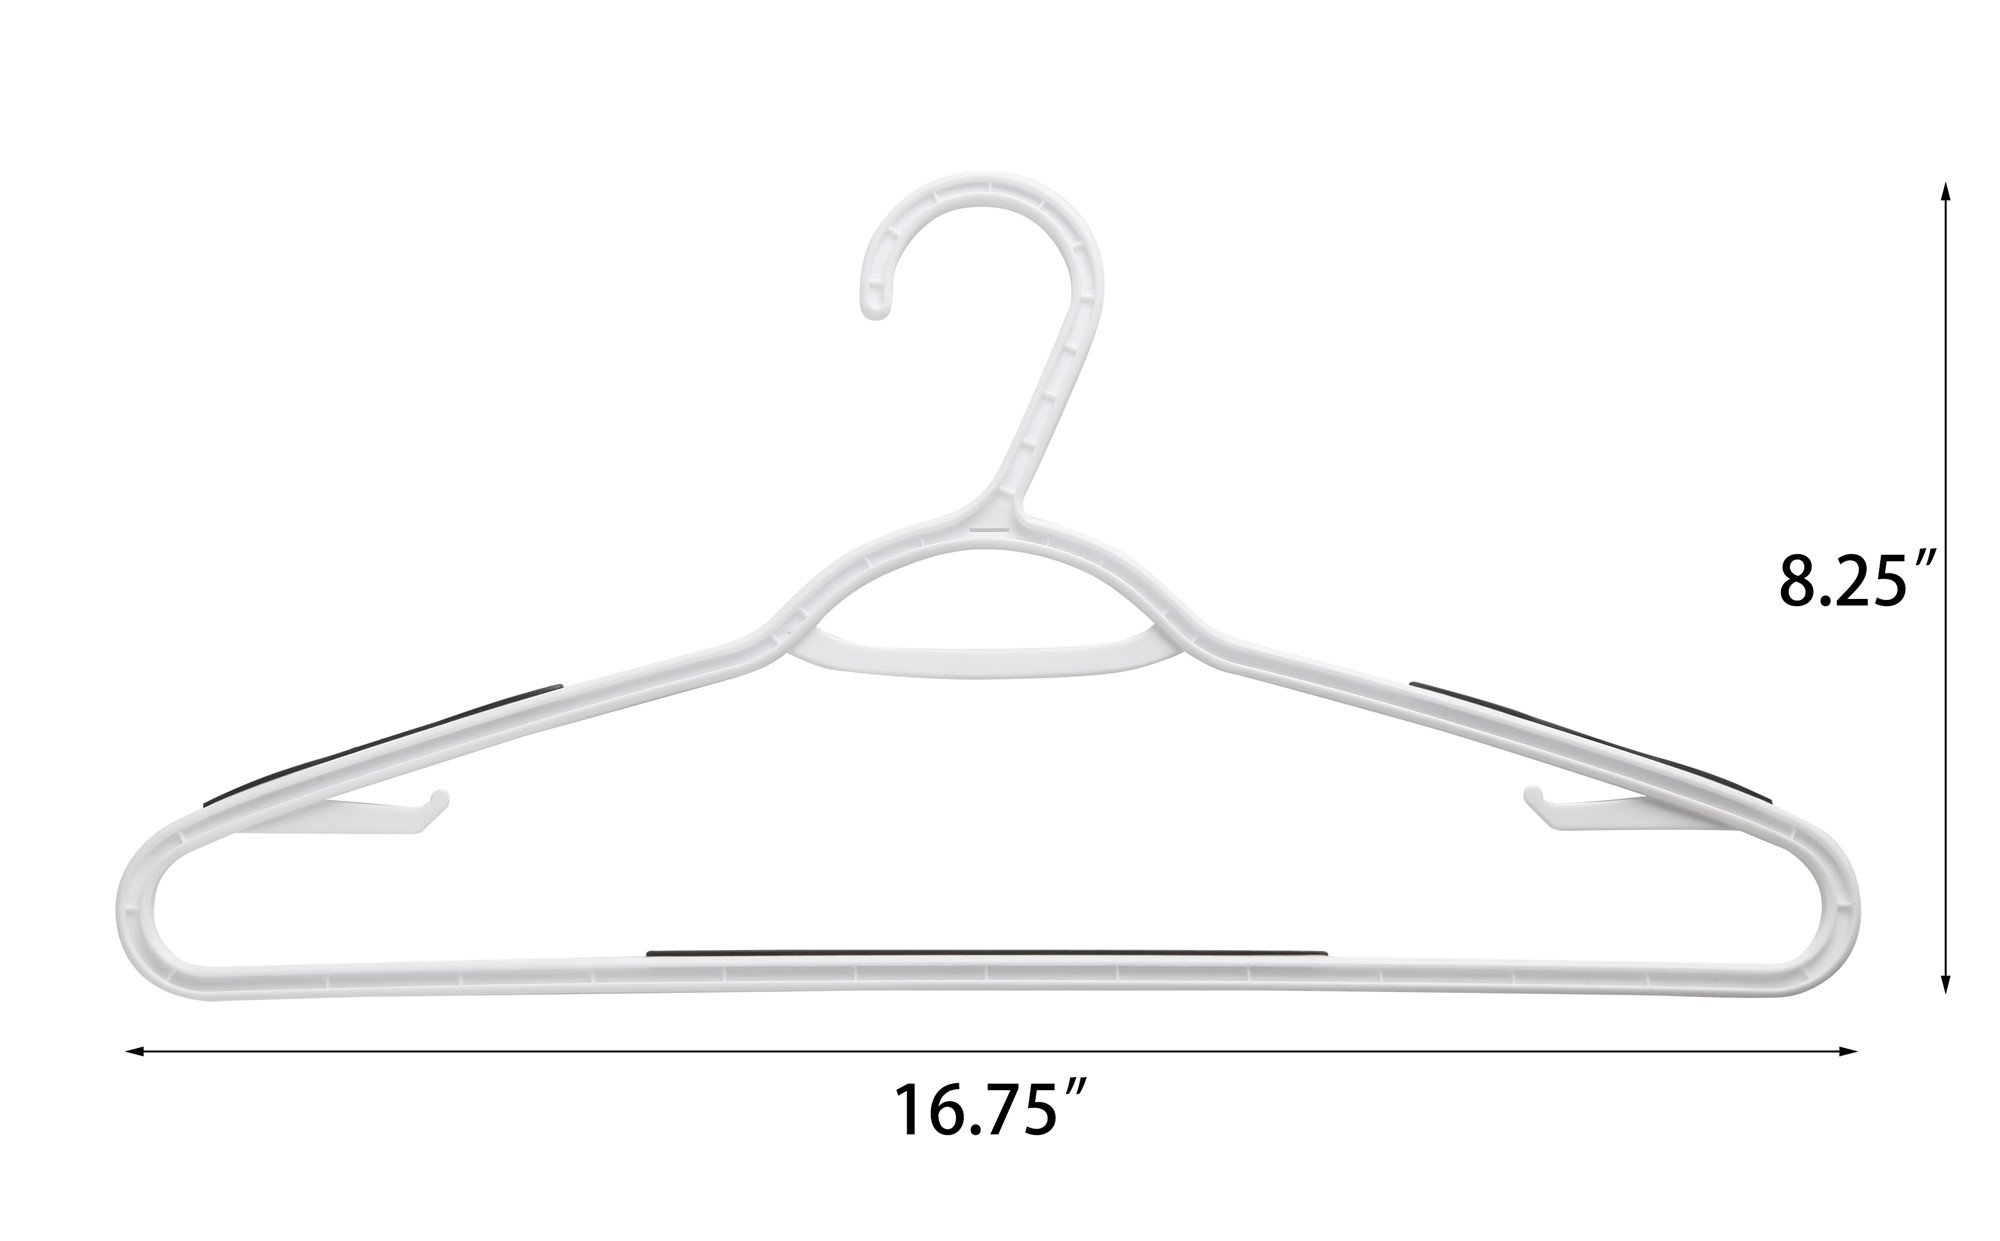 Finnhomy Super Value 50 Pack Plastic Hangers, Durable Clothes Hangers with Non-Slip Pads, Space Saving Easy Slide Organizer for Bedroom Closet Wardrobe, Great for Shirts, Pants, Scarves by Finnhomy (Image #2)